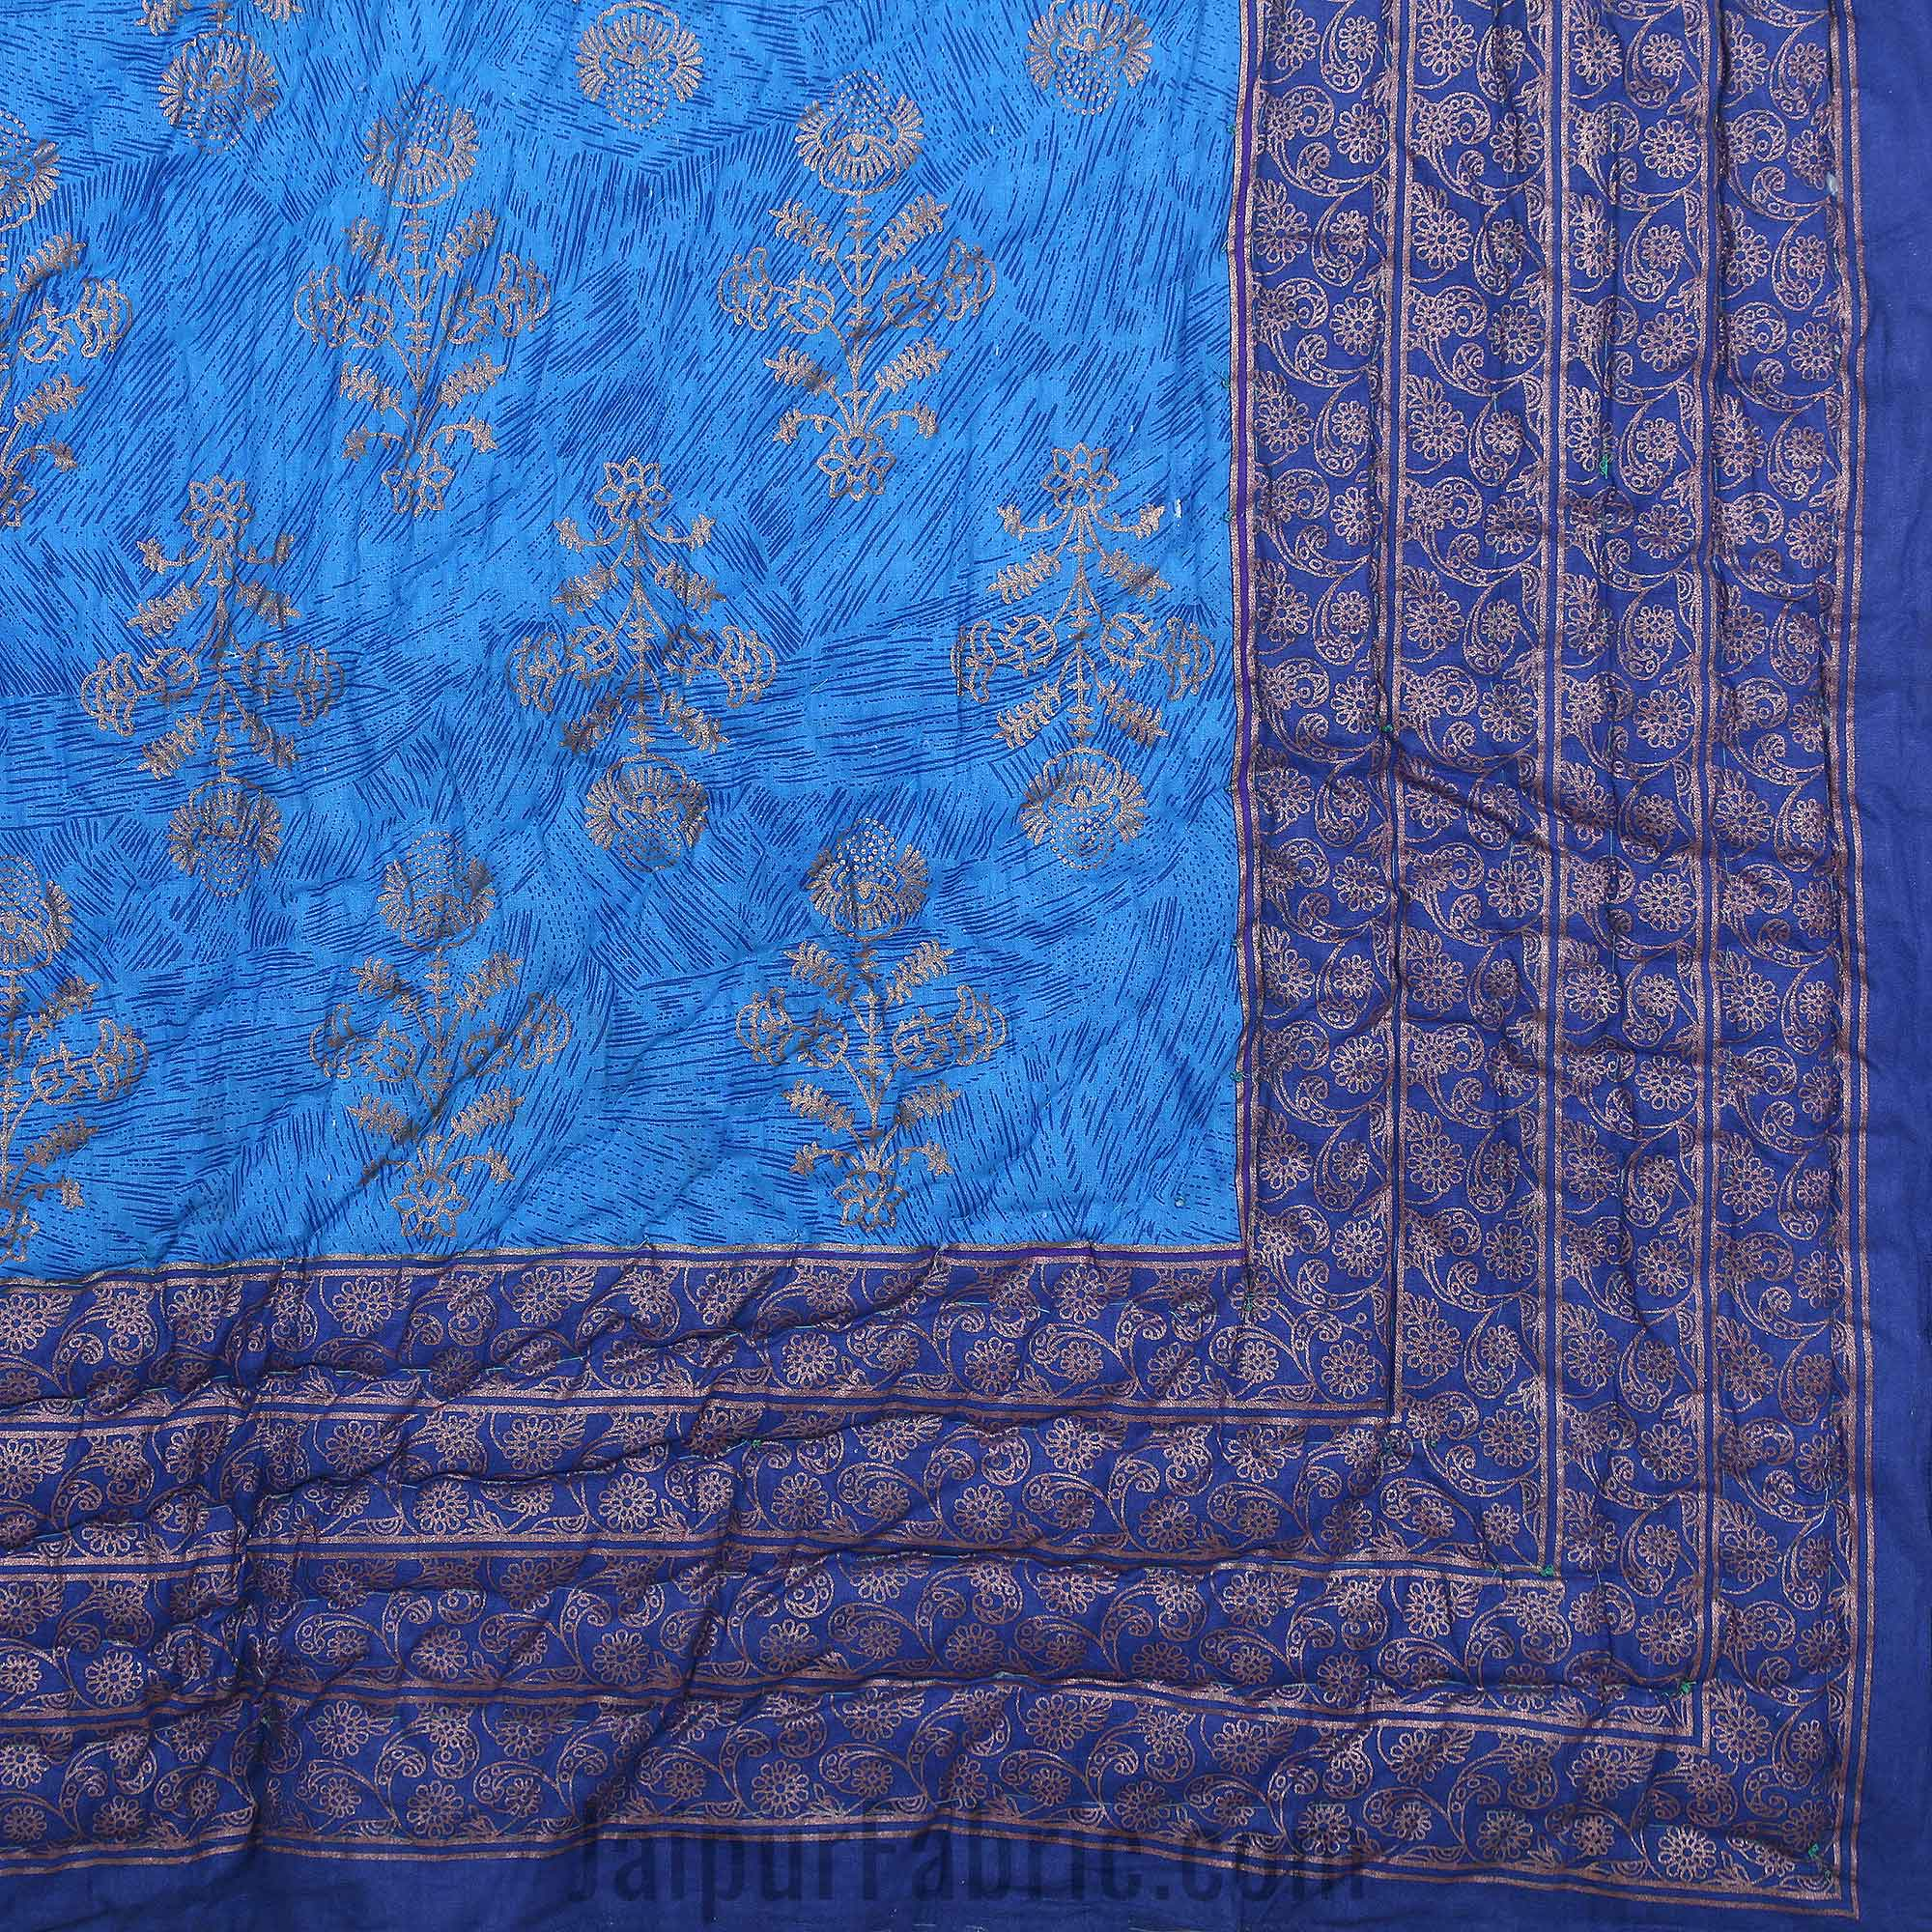 Jaipuri Printed Single Bed Razai Golden Blue and Purple with Paisley pattern